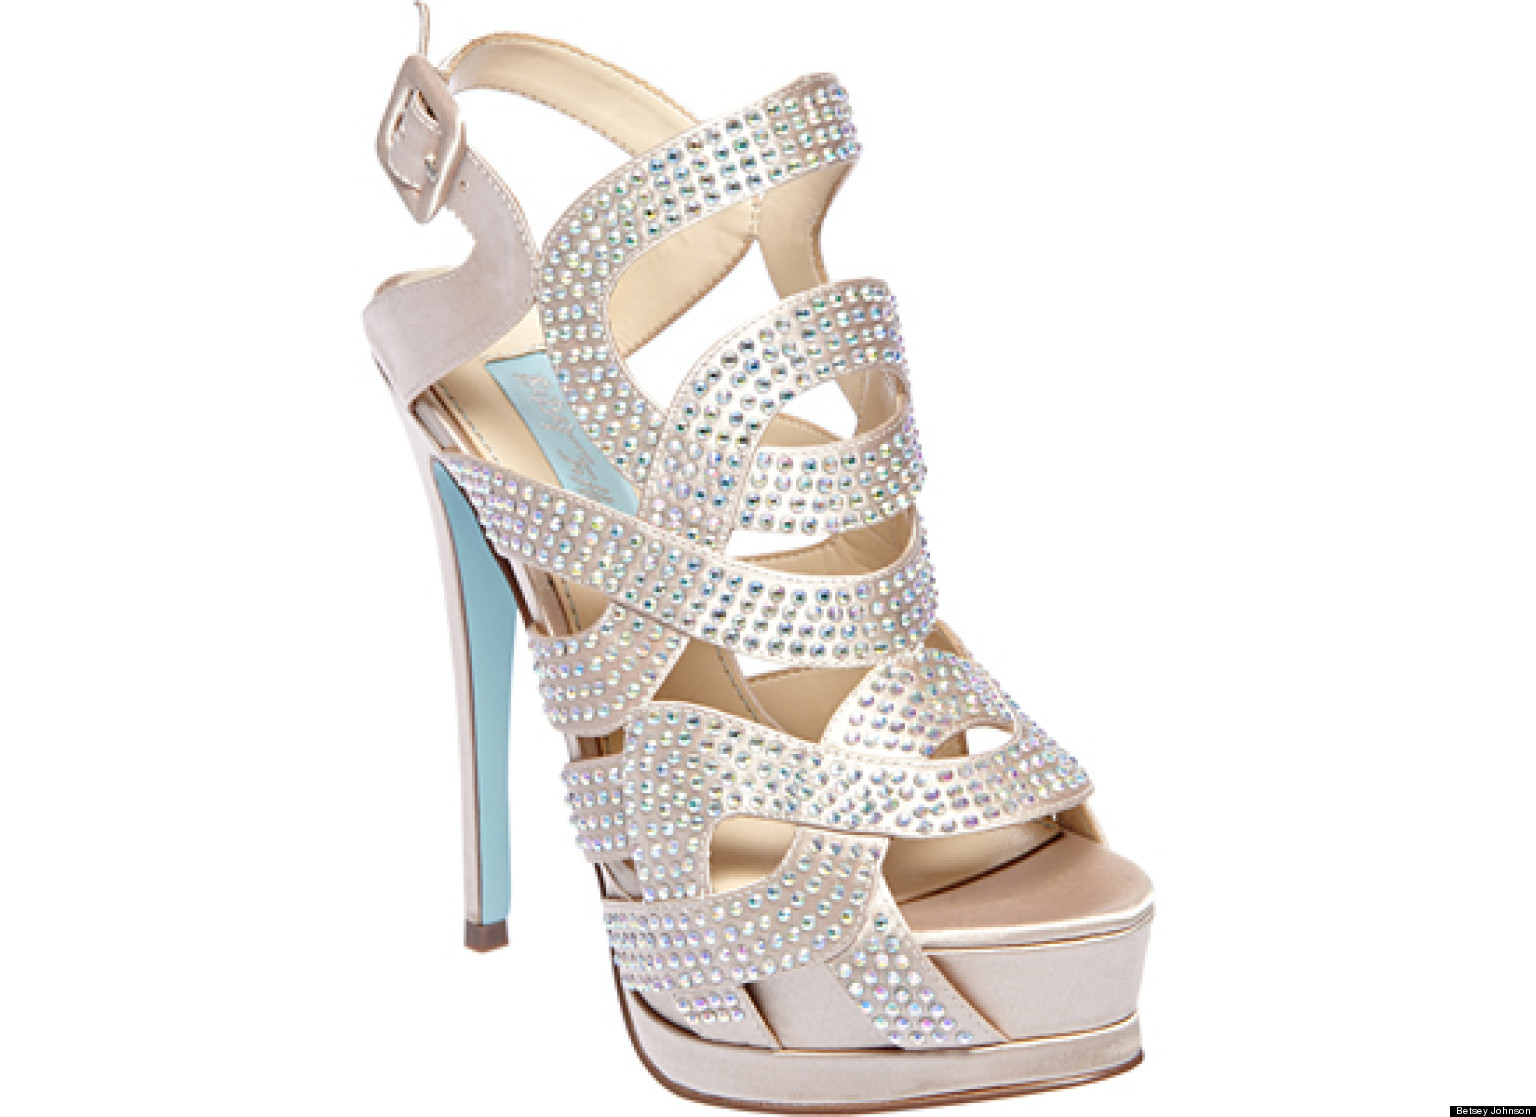 Betsey Johnsonu0026#39;s Bridal Shoe Collection To Debut On Zappos.com (PHOTOS)